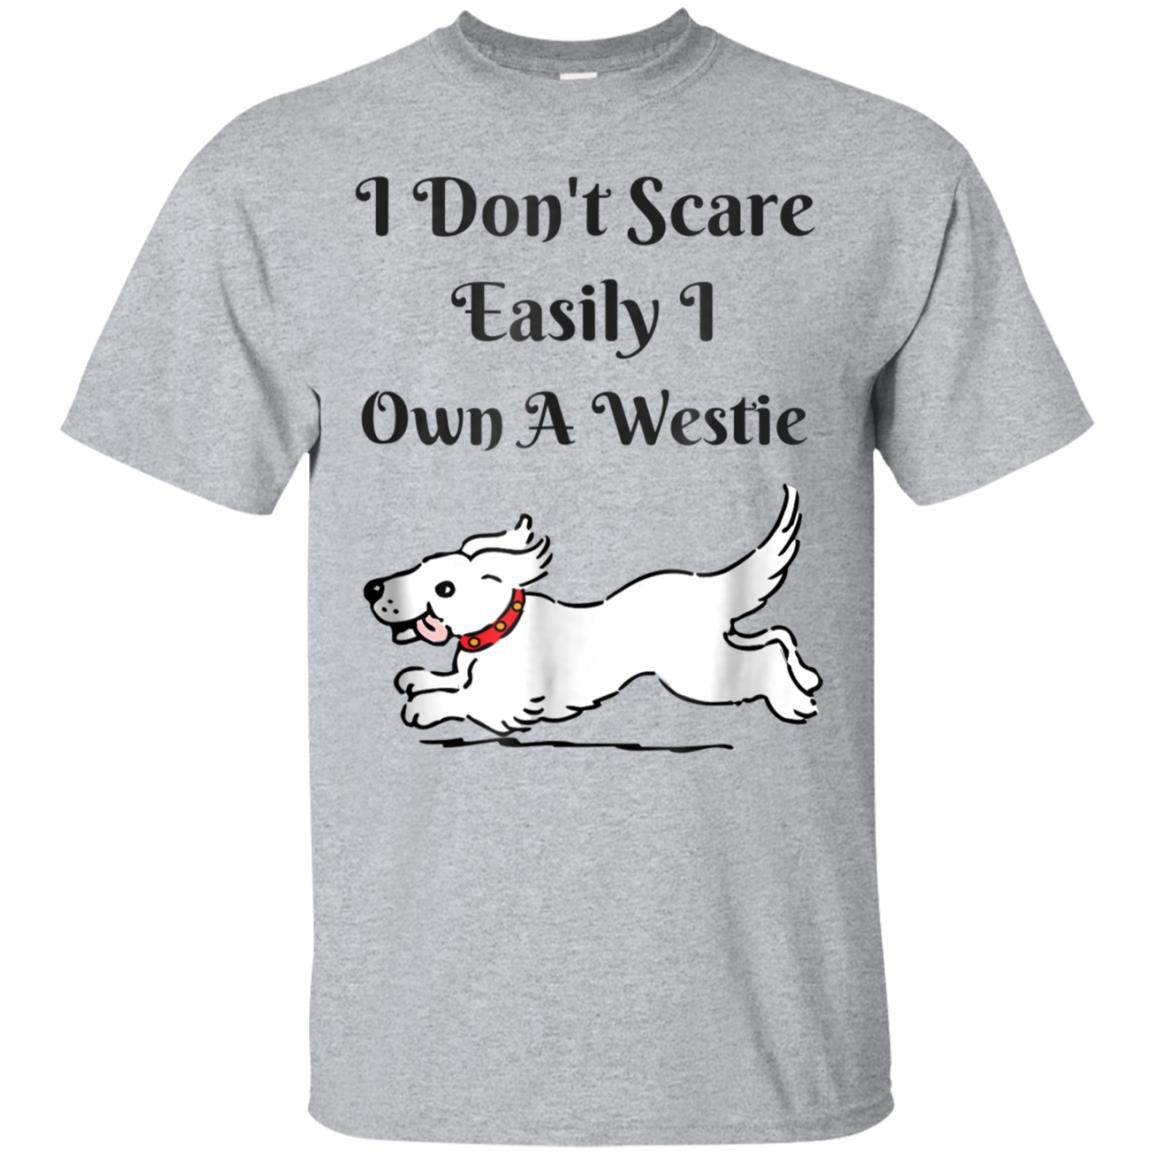 I Don't Scare Easily I Own A Westie Halloween T - Shirt 99promocode